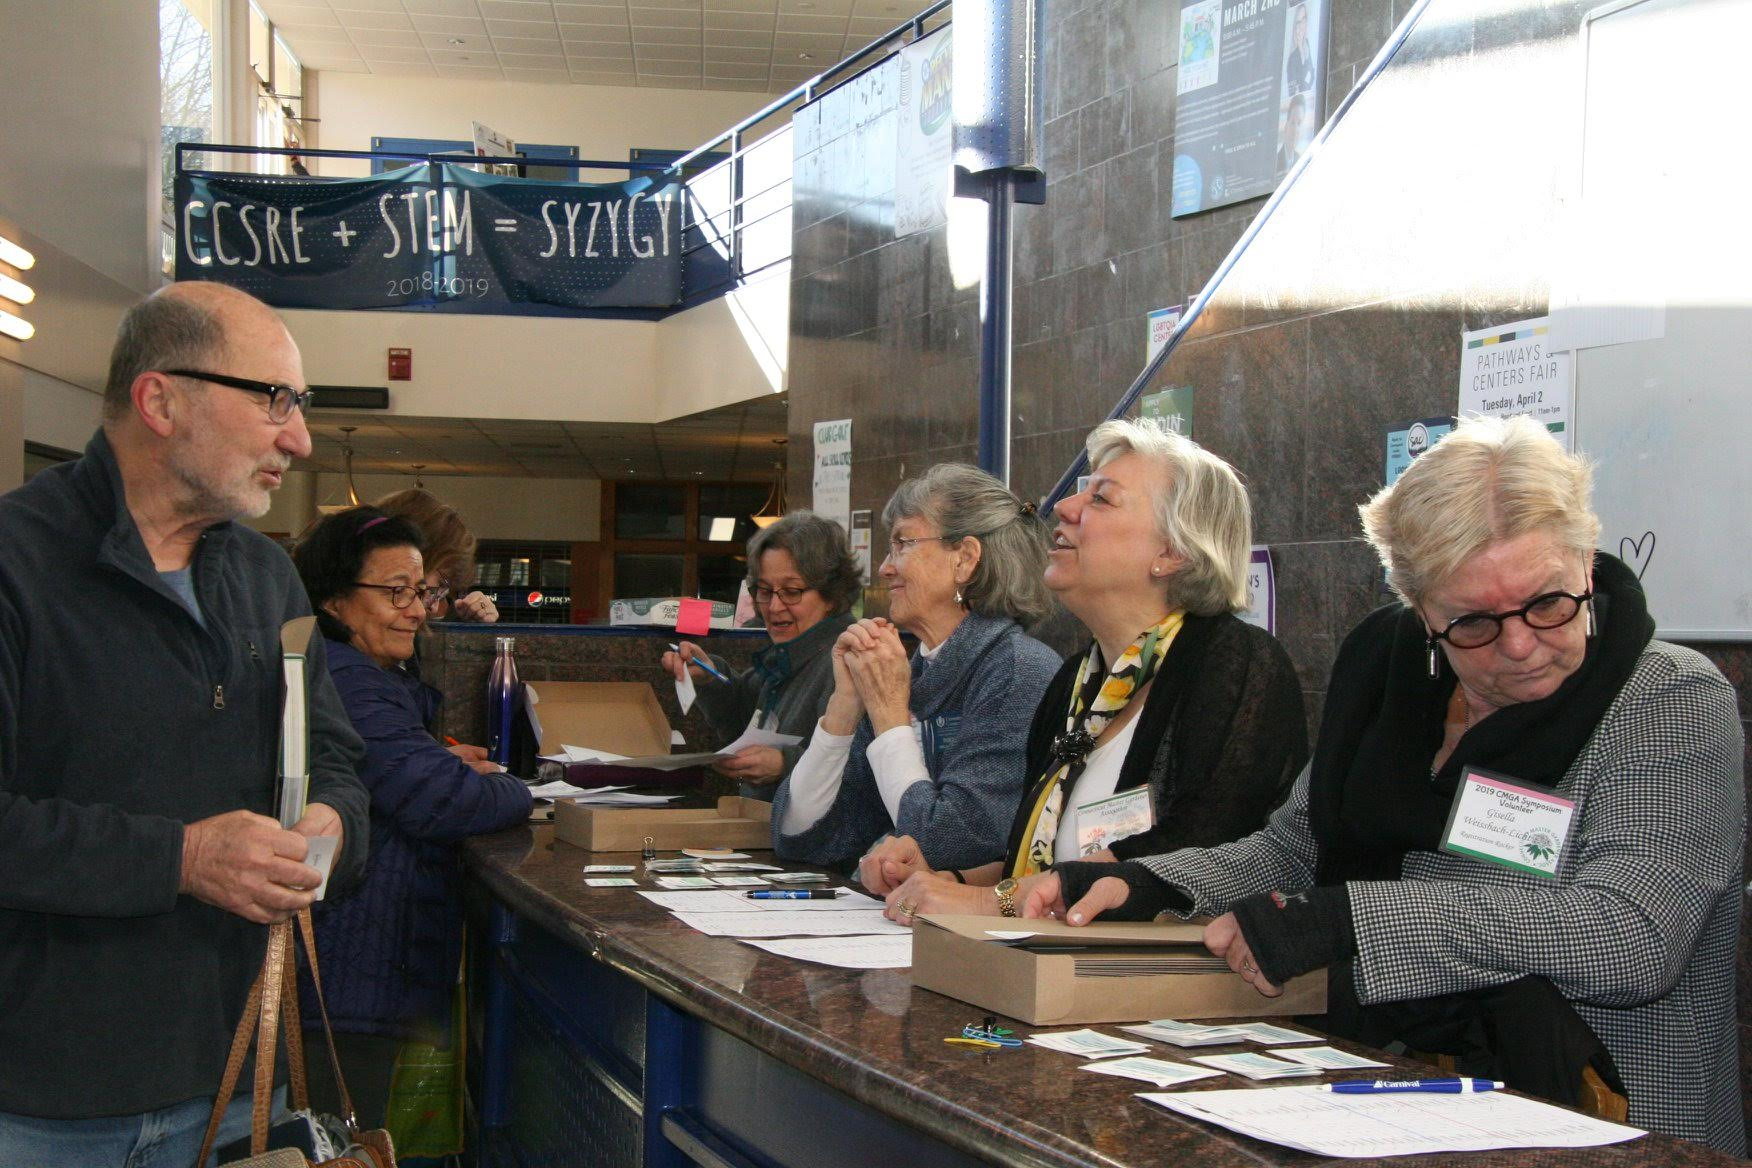 Registration chair Paul Russo behind the desk (far left) & Susan Turner (2nd from right) along with volunteers.